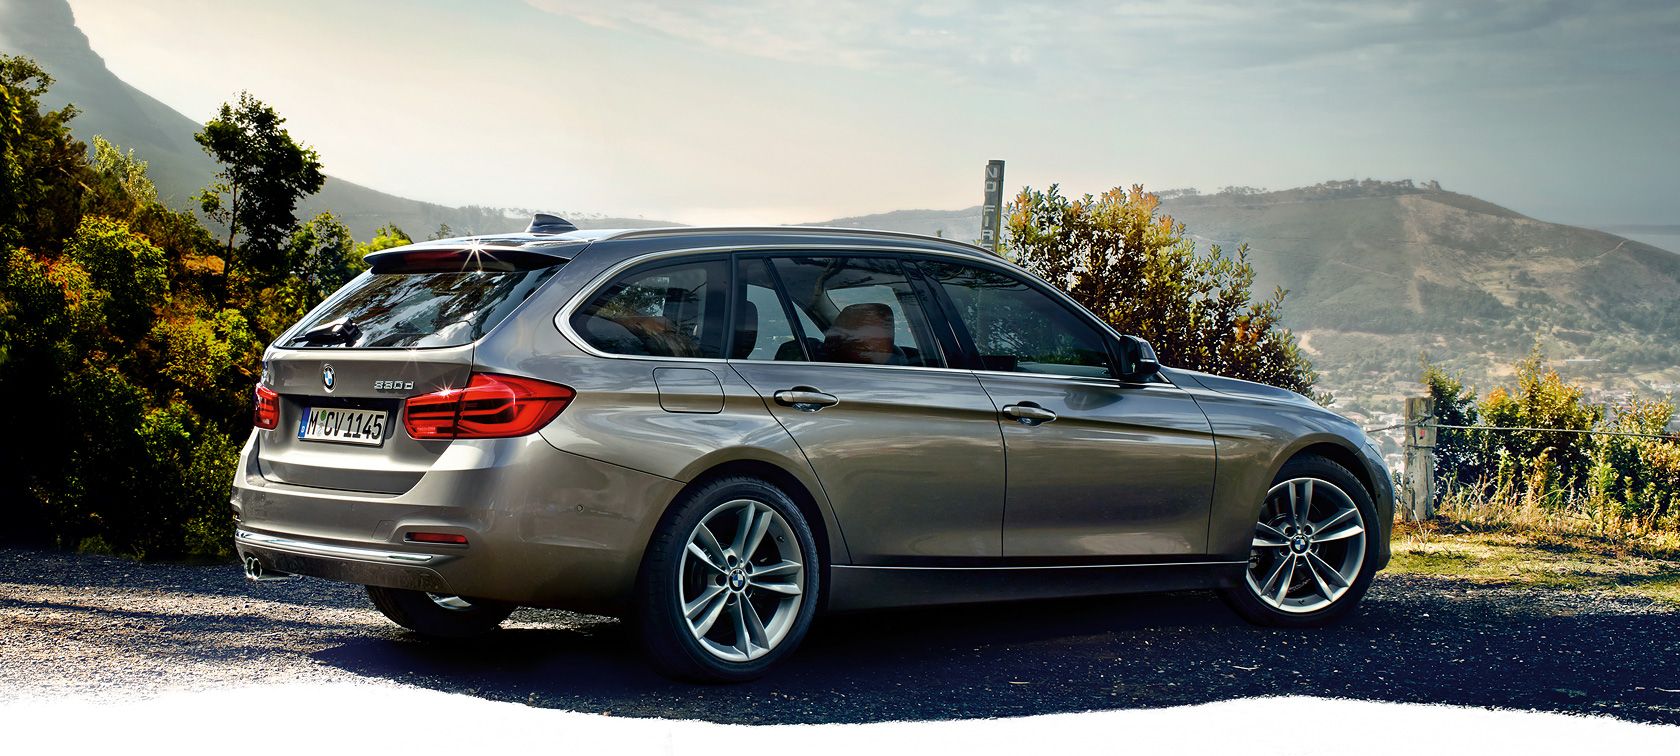 BMW 3 Series: topview from the hill.